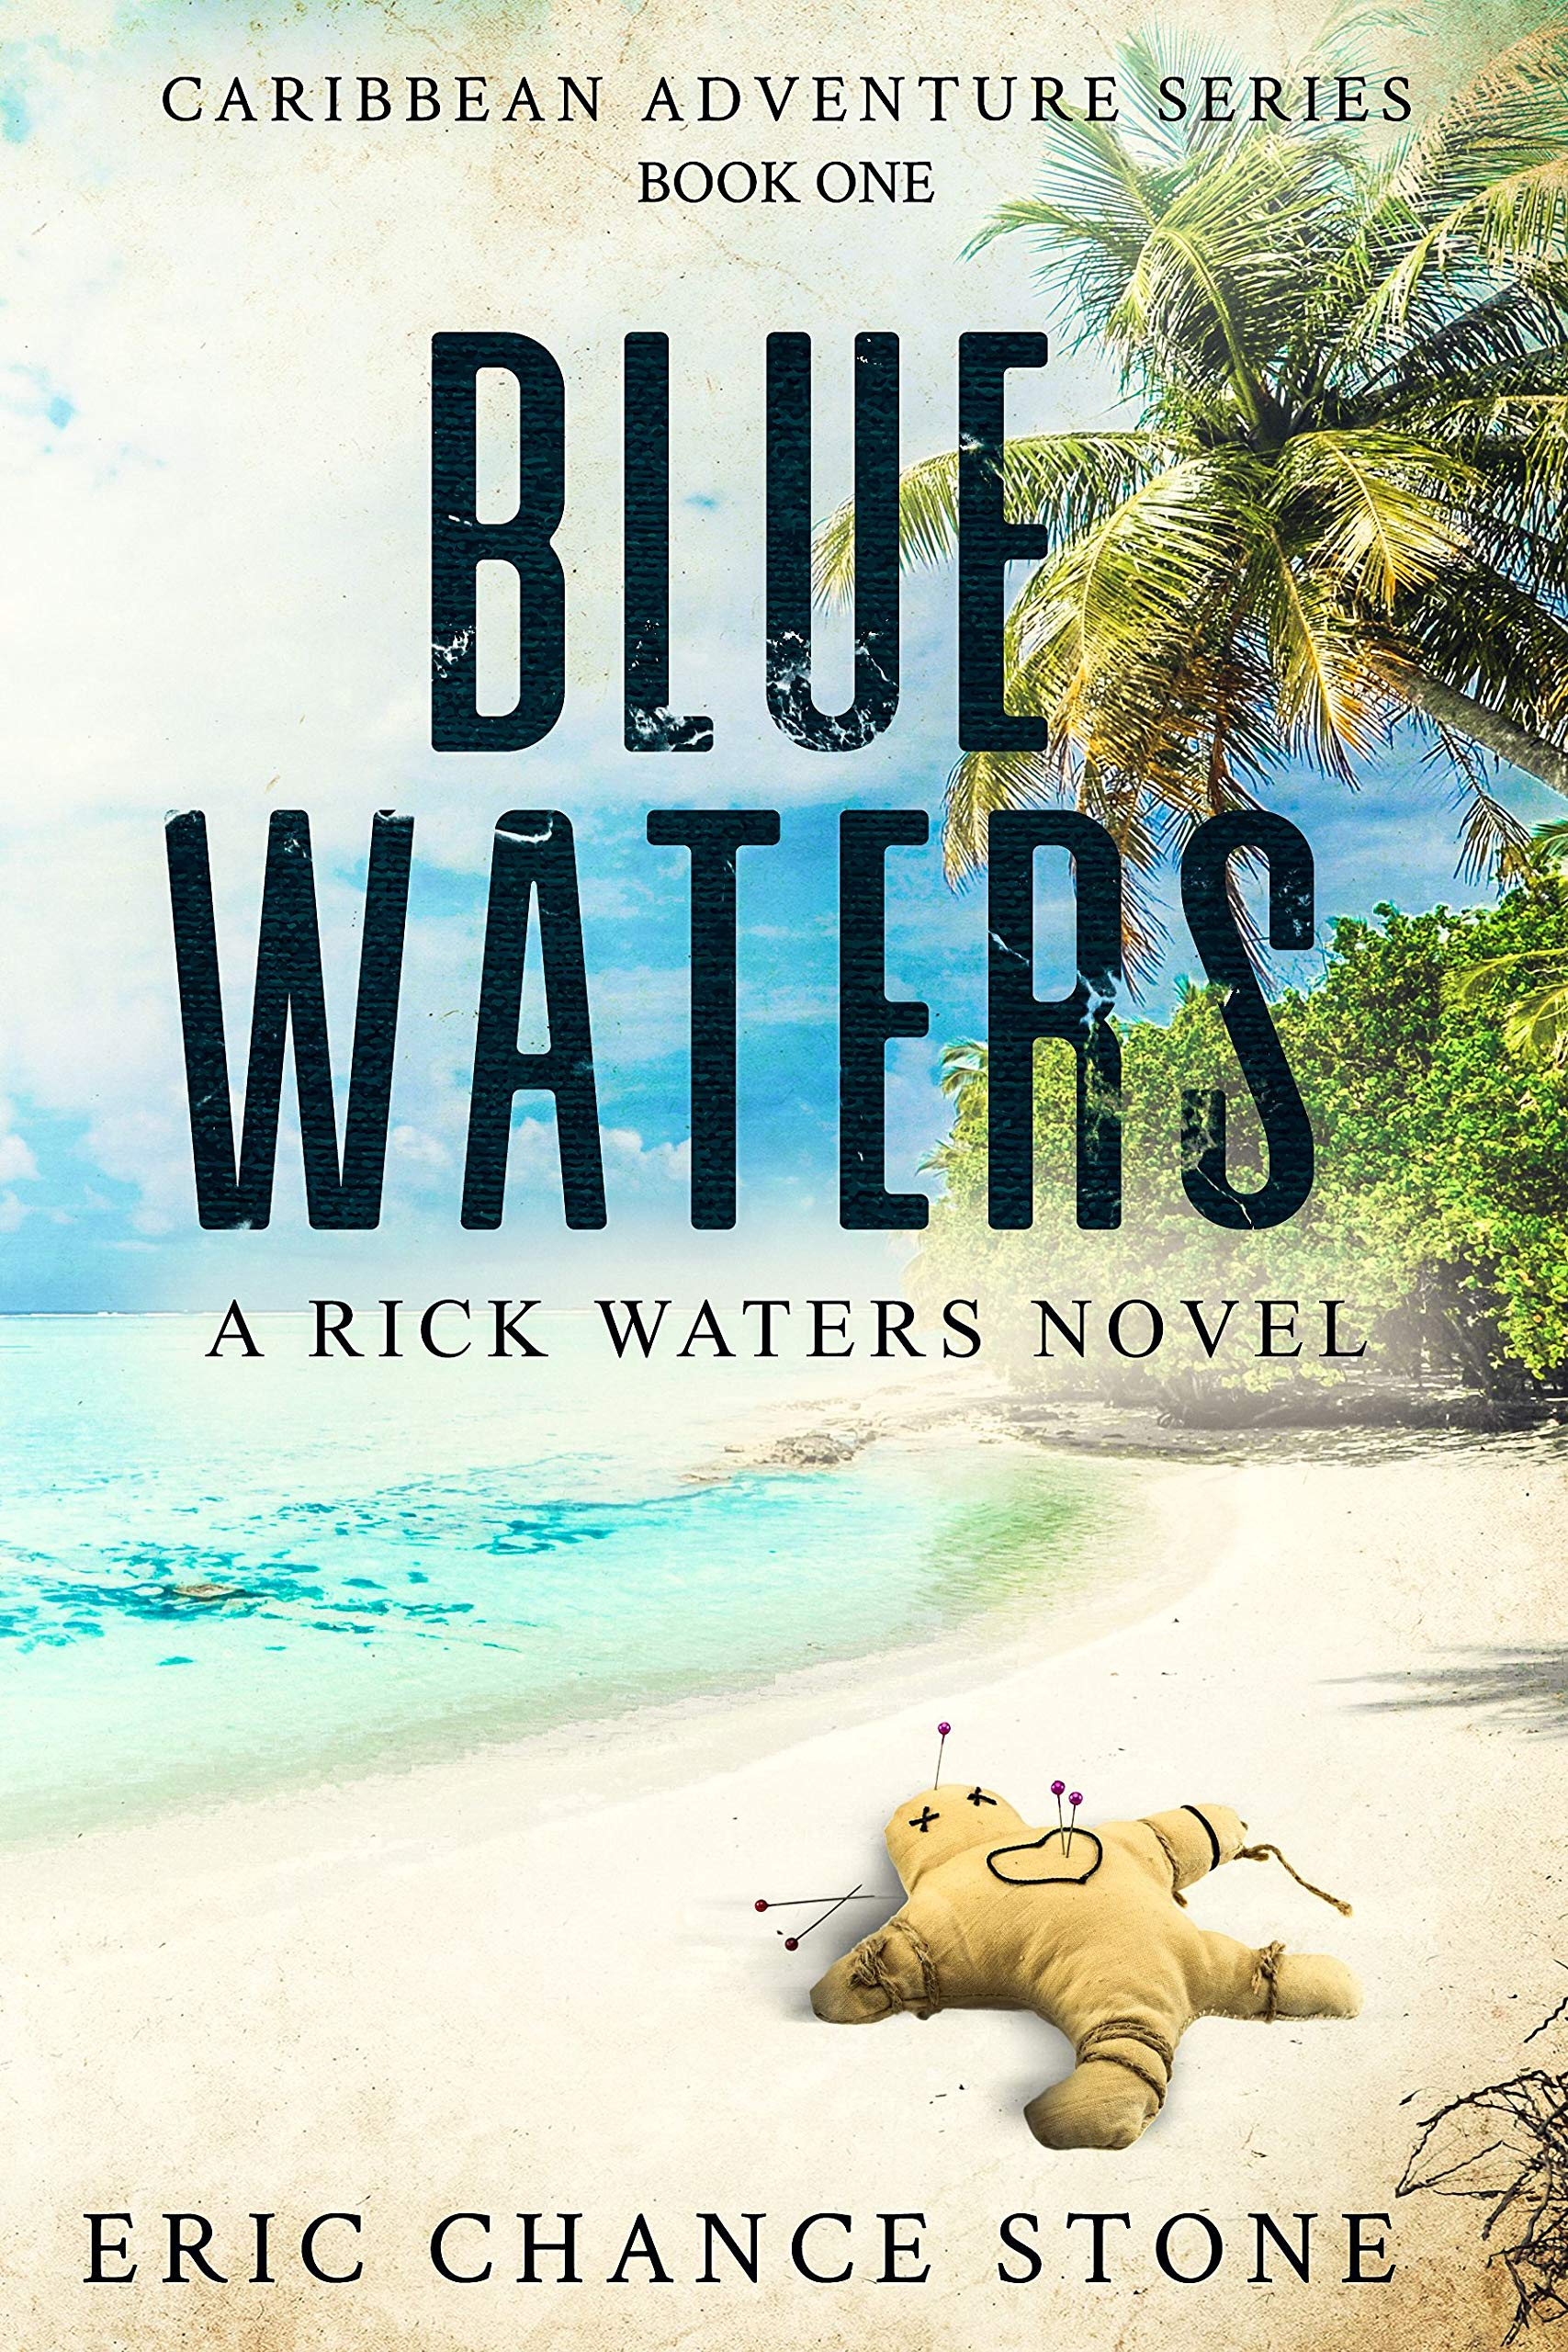 Blue Waters: A Rick Waters Novel (Caribbean Adventure Series Book 1)